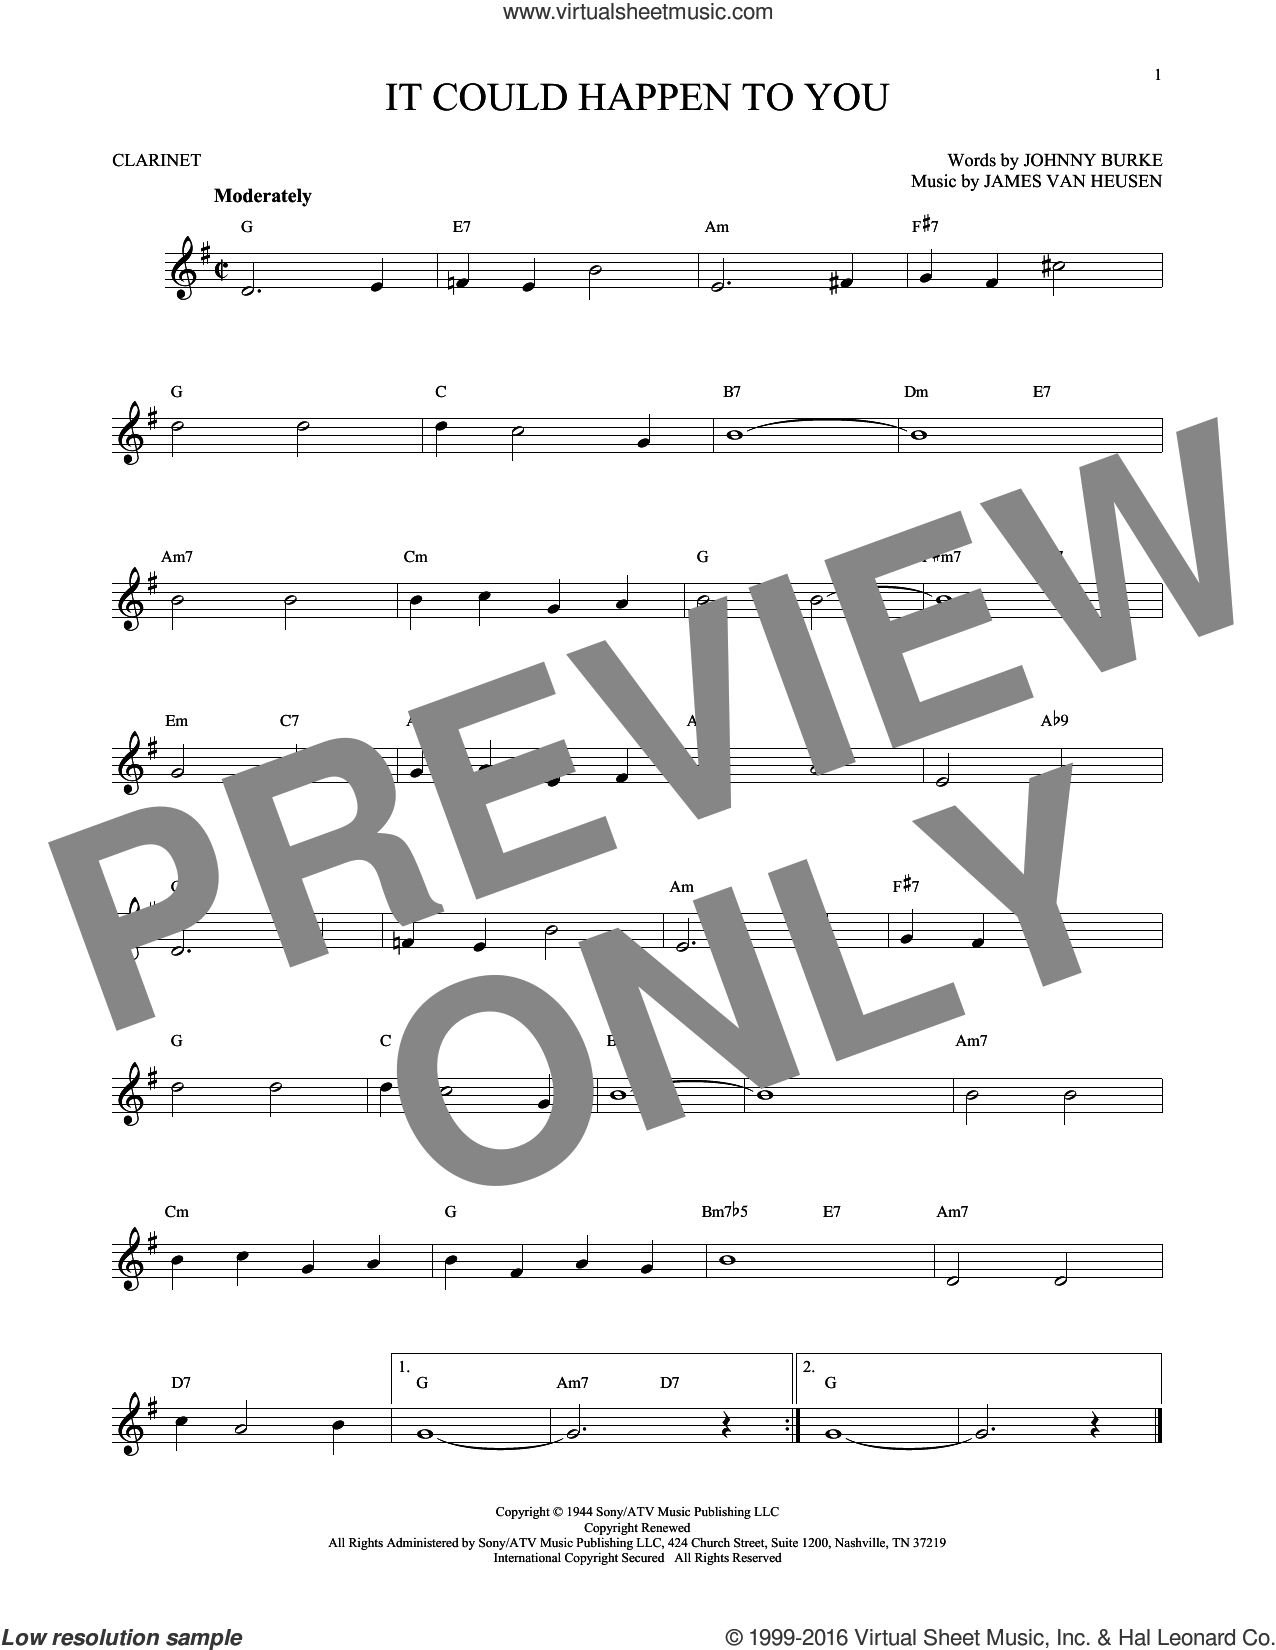 It Could Happen To You sheet music for clarinet solo by John Burke and Jimmy van Heusen. Score Image Preview.